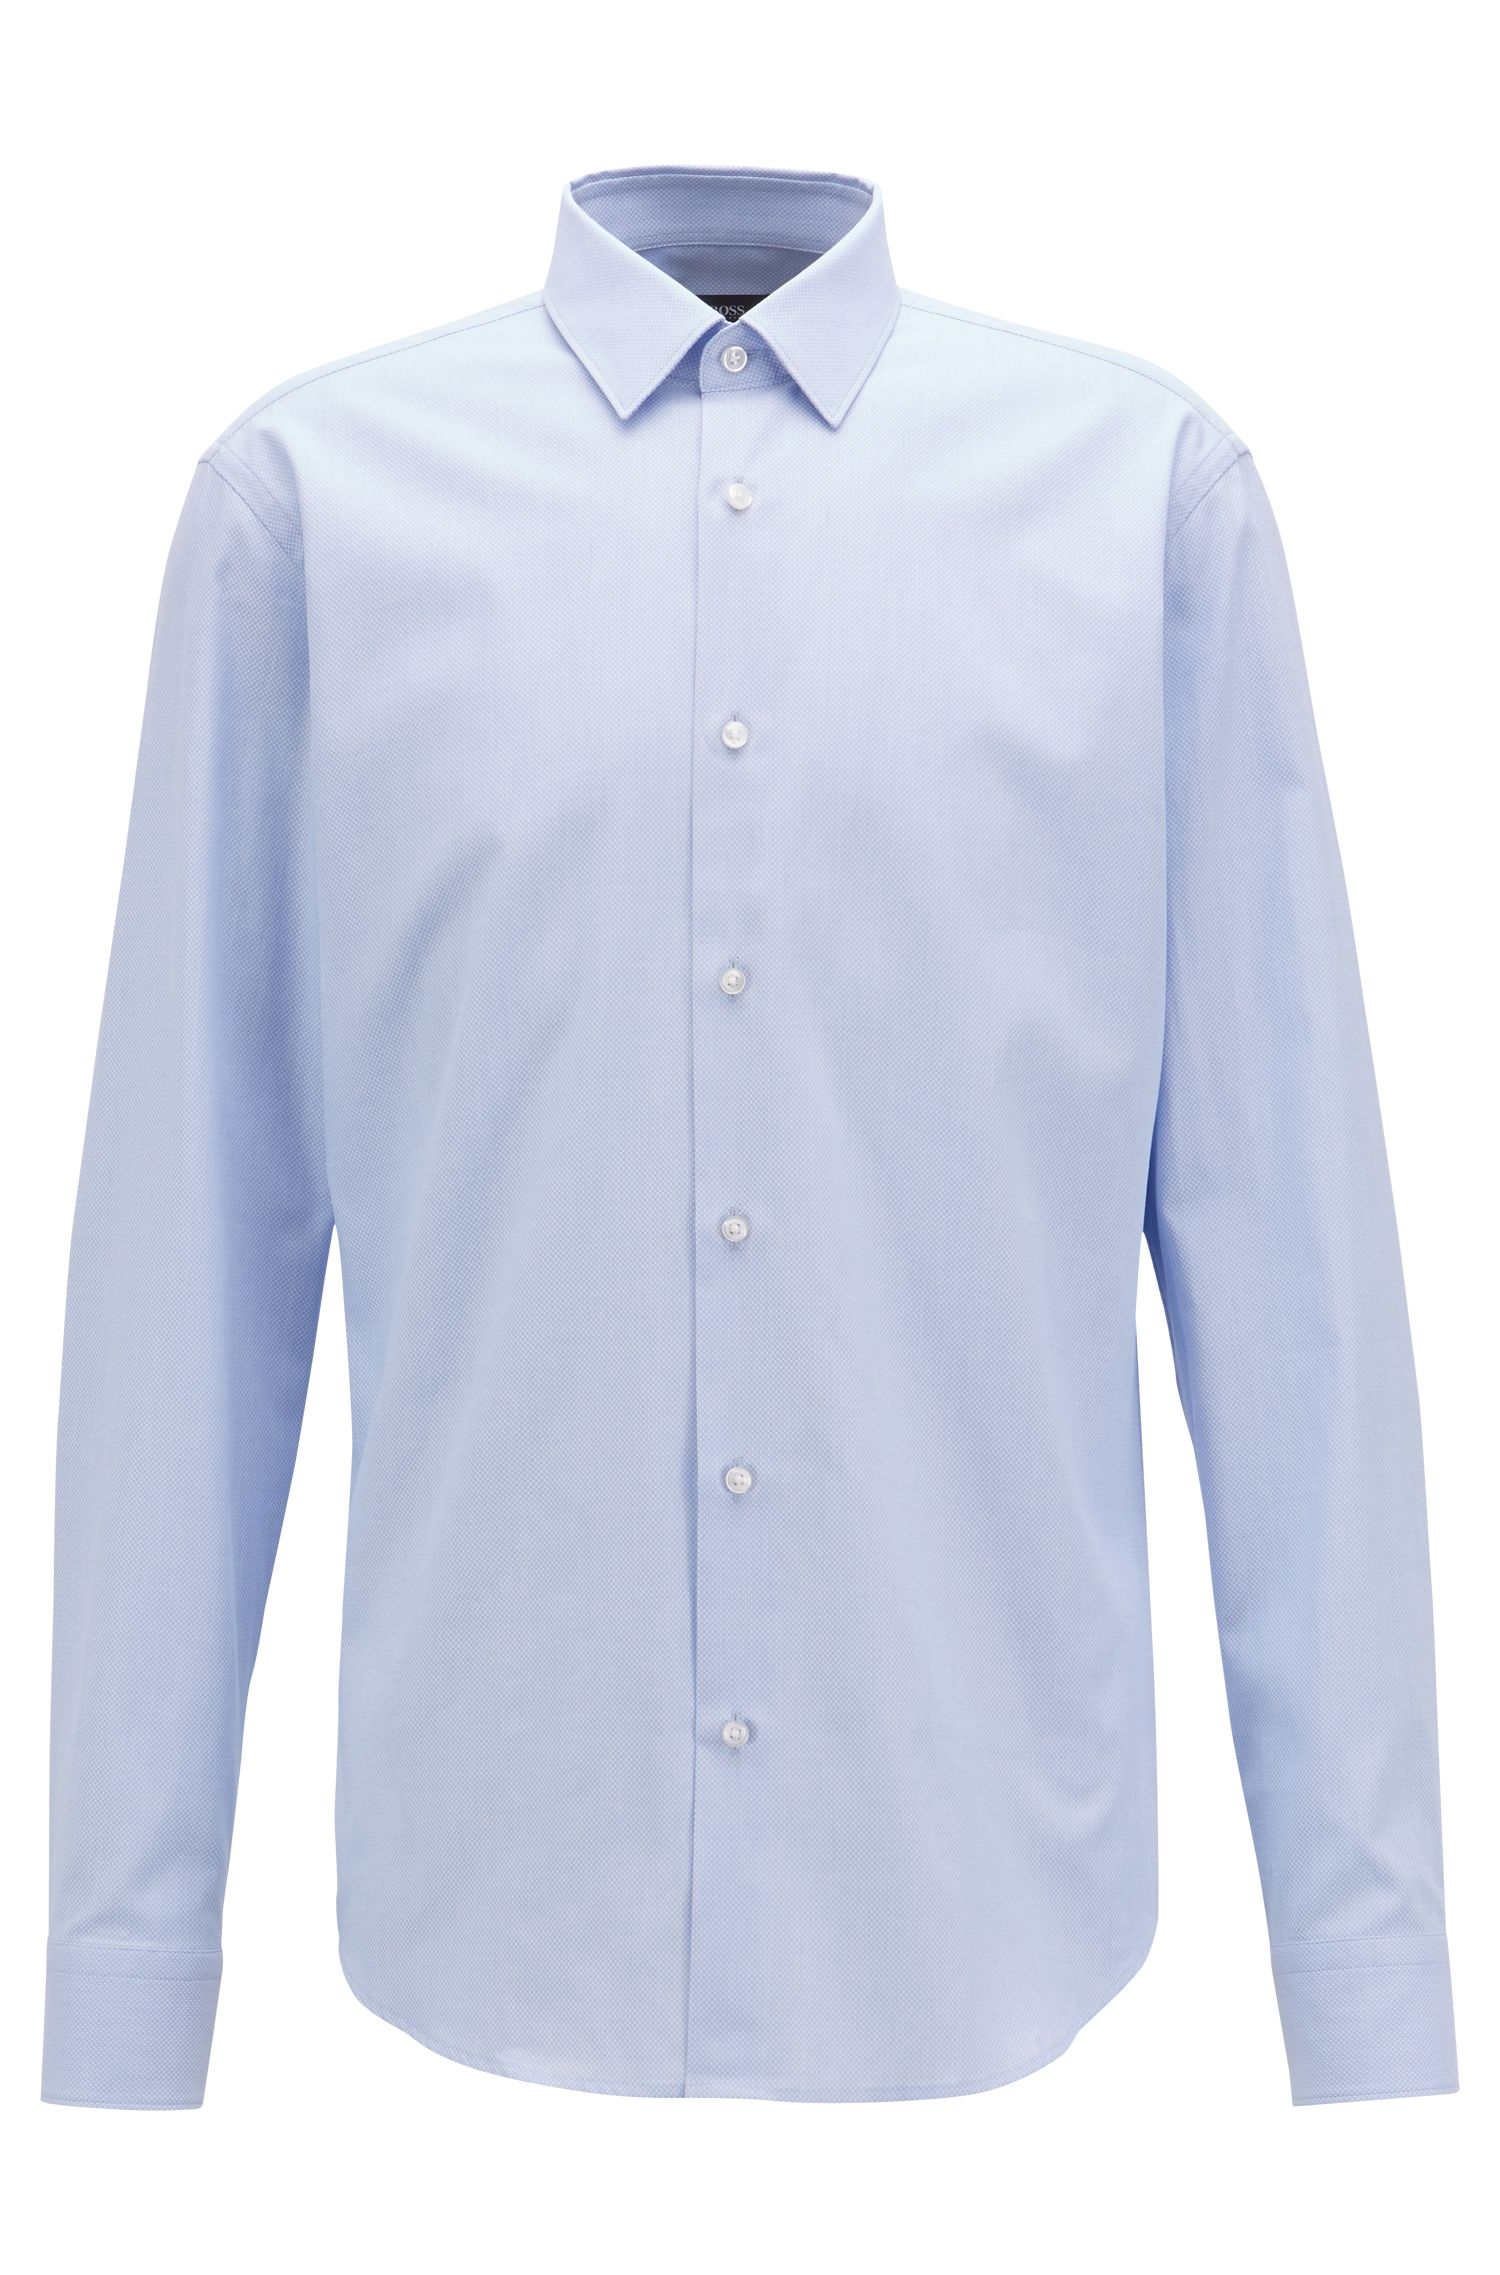 Chemise Regular Fit en coton structuré, rehaussée de surpiqûres